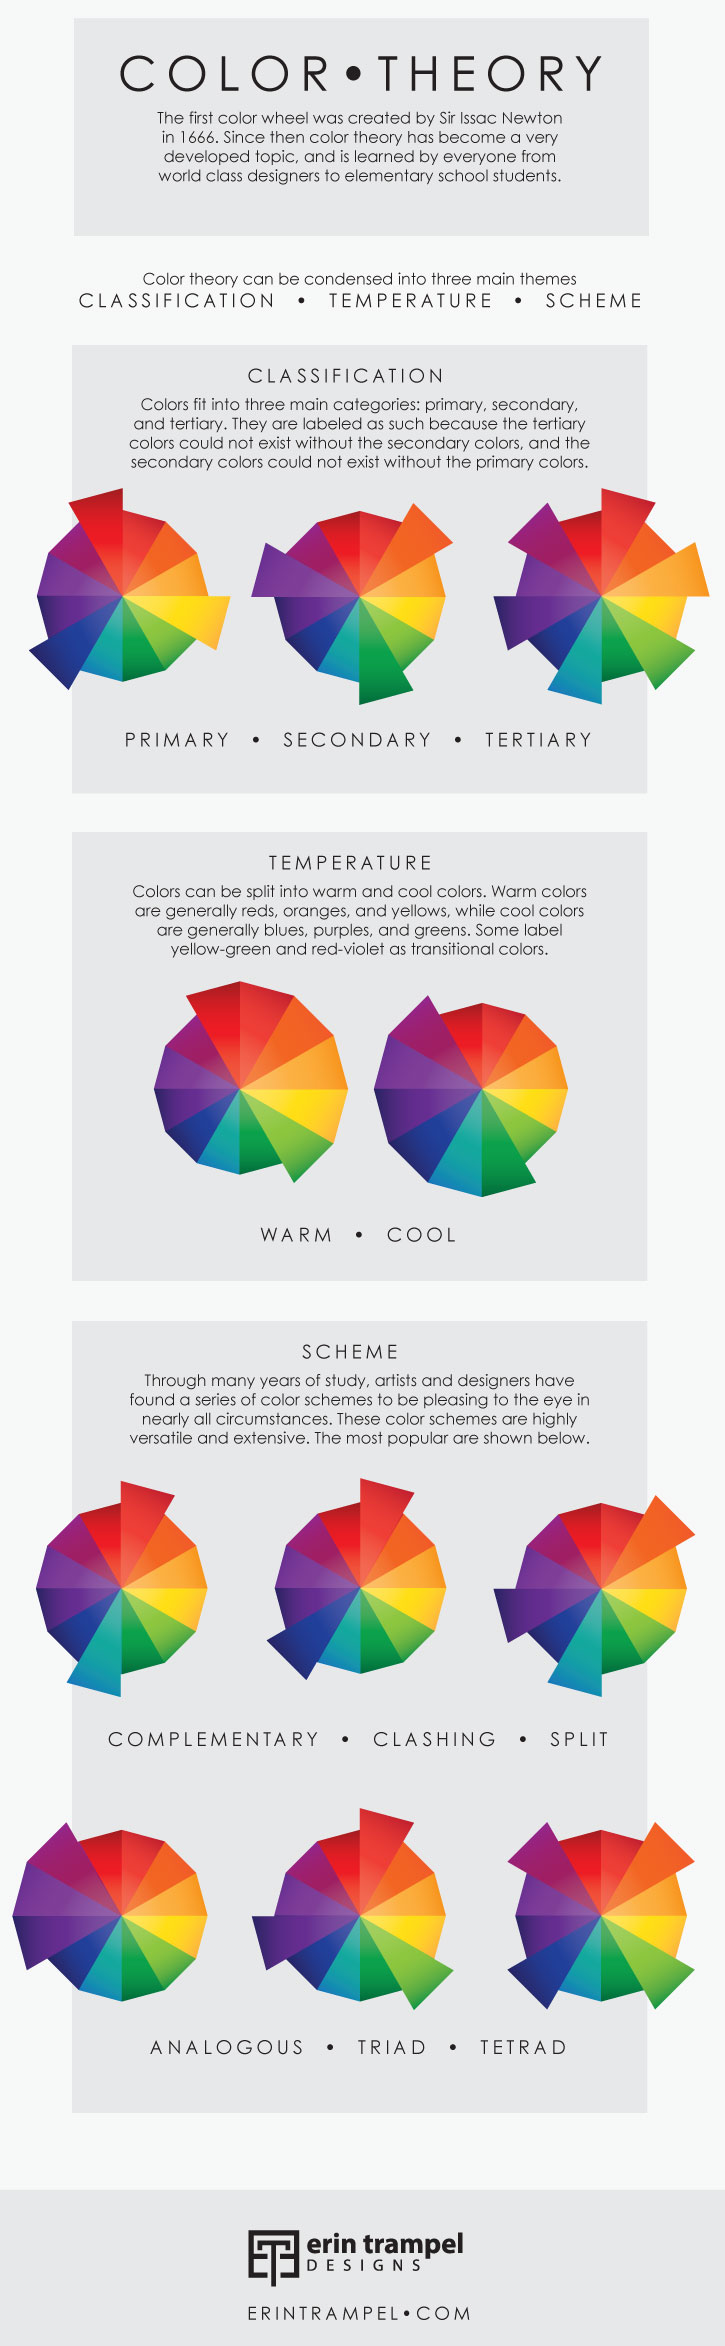 color-theory_infographic.jpg